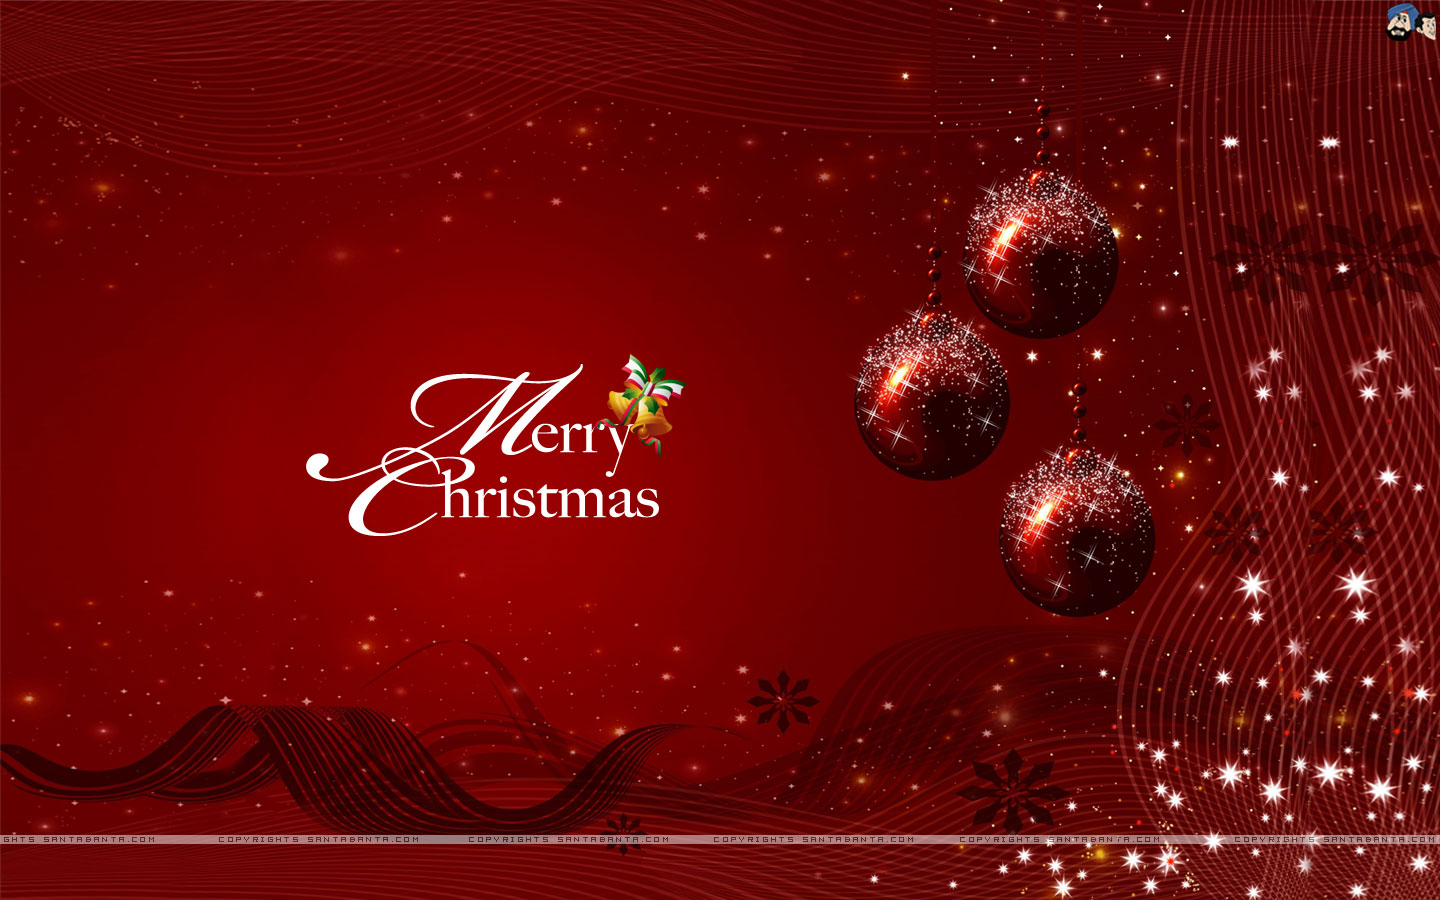 Christmas Wallpaper Free Widescreen